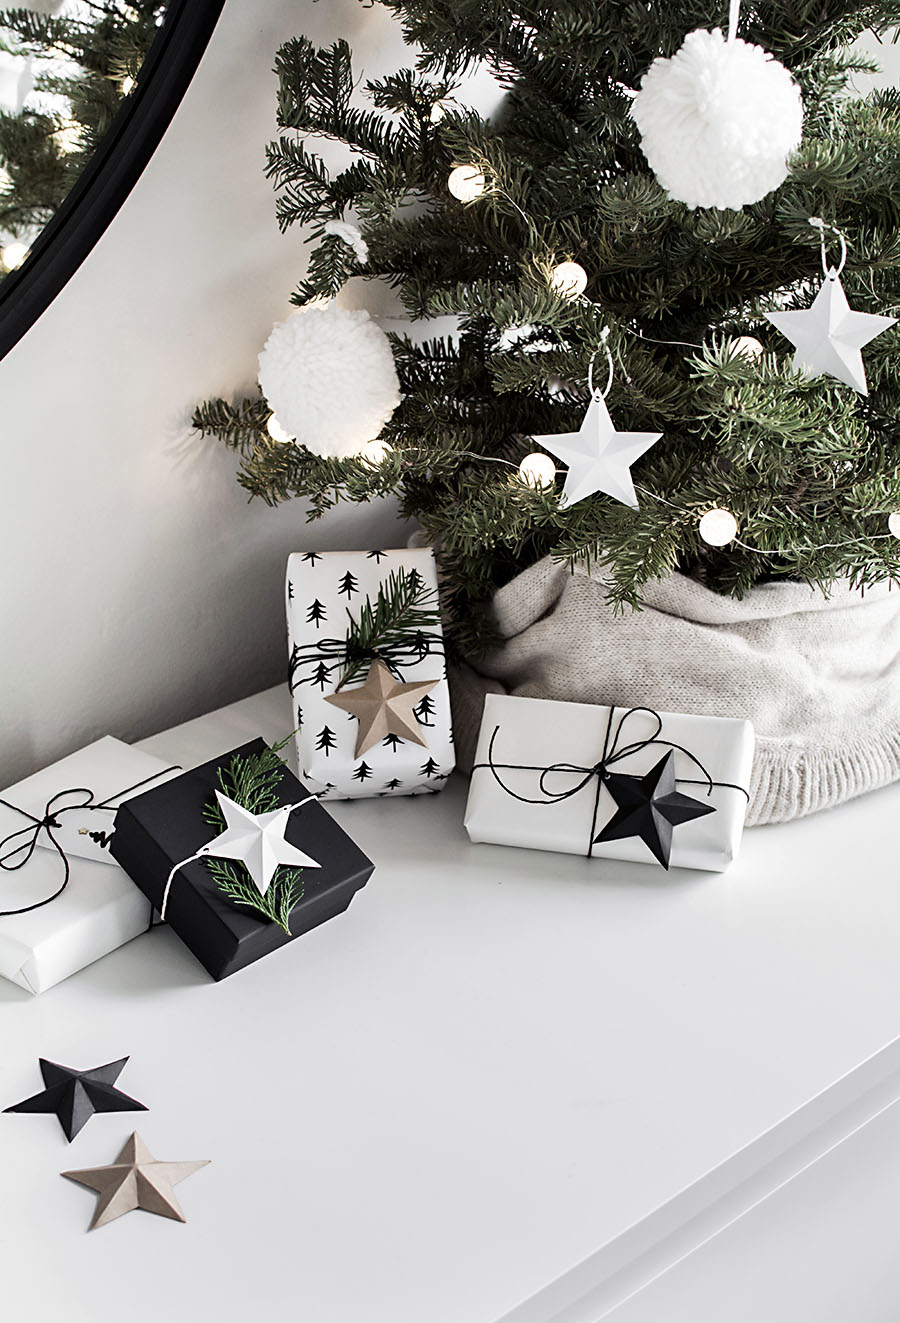 3D Paper Stars Printable - Homey Oh My within Printable Christmas Tree Templates 3D